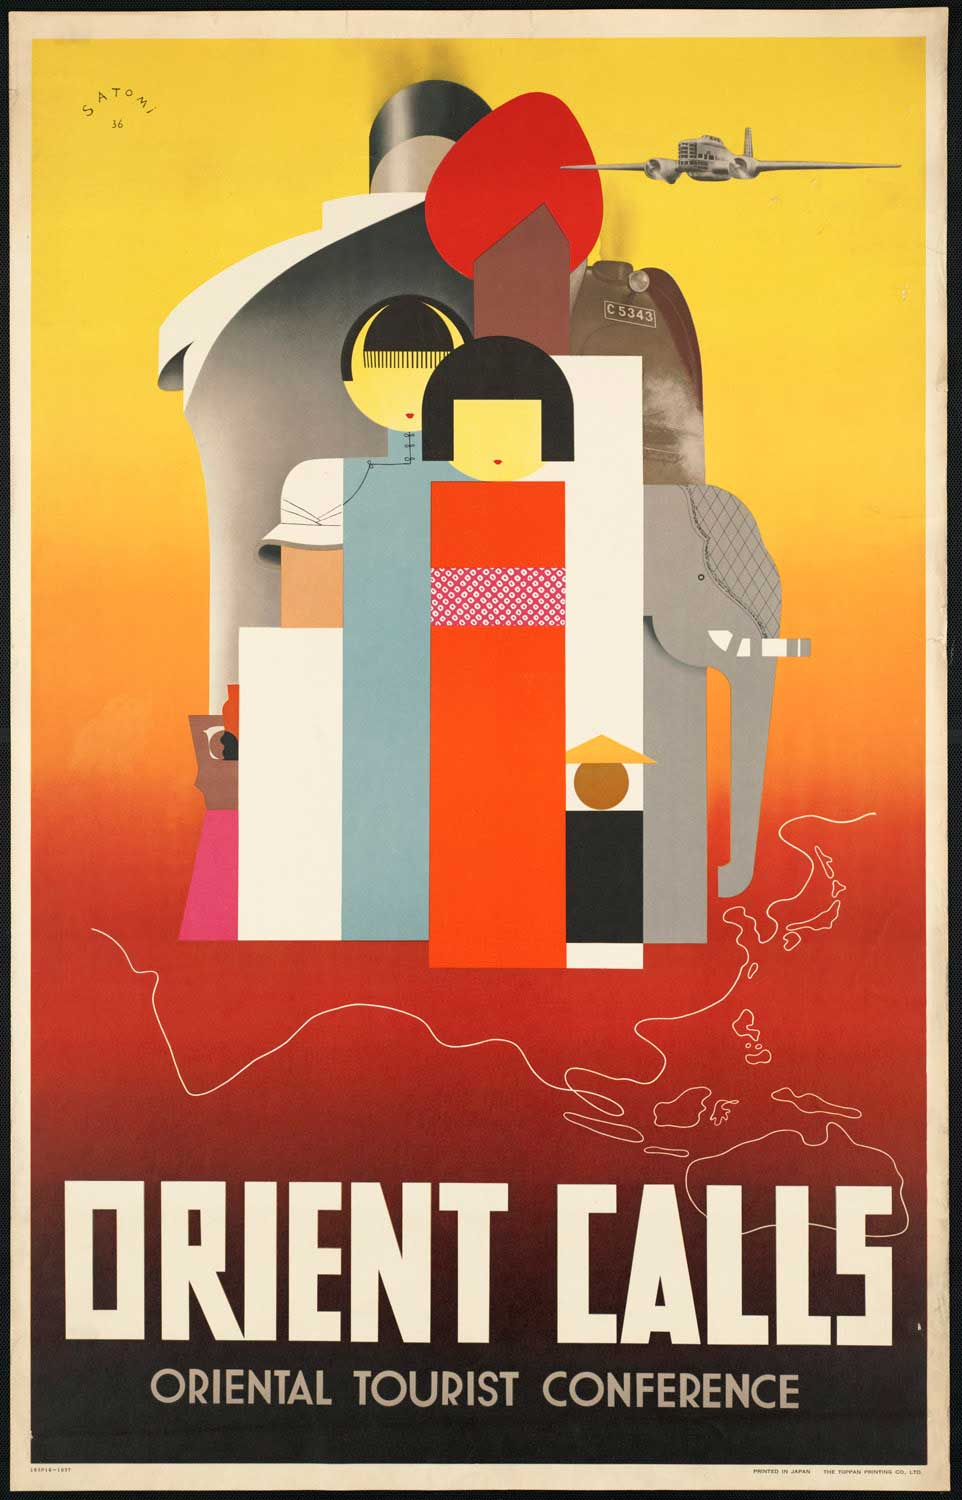 Poster design 1920s - 60 Beautiful Vintage Travel Posters Around The World From Between The 1920s And 1940s